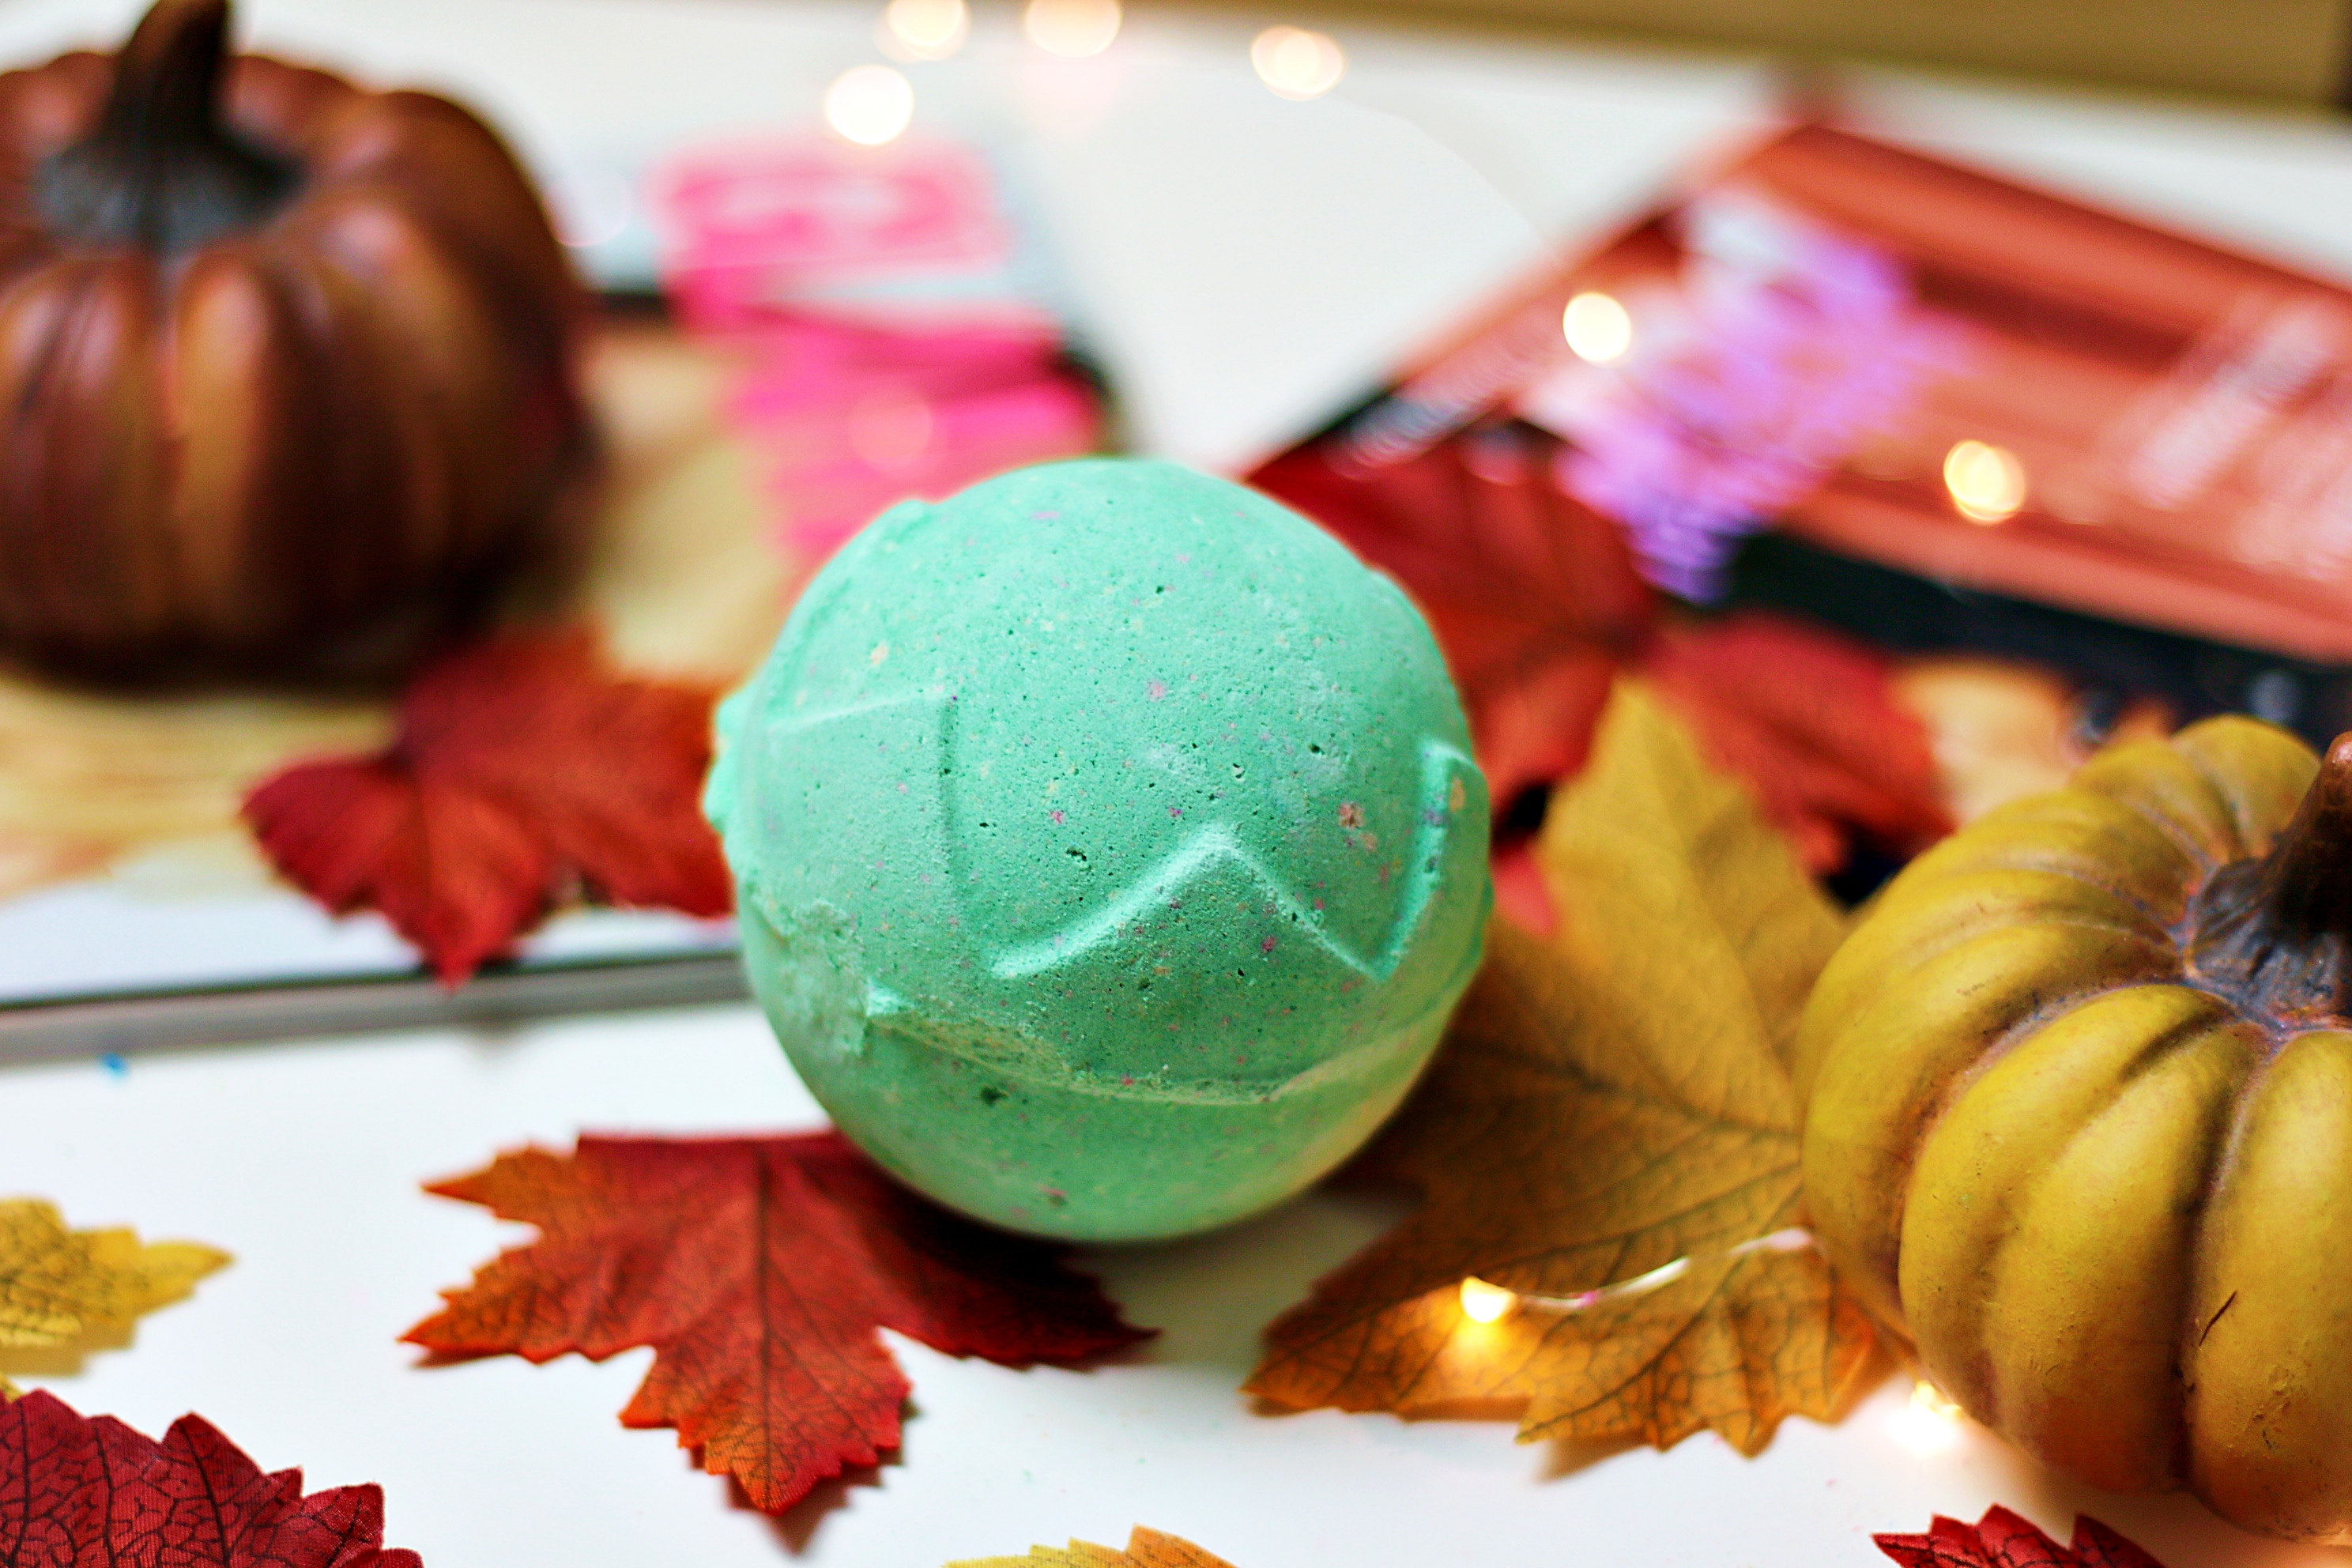 Lush Halloween 2019 Lord Of Misrule Bath Bomb